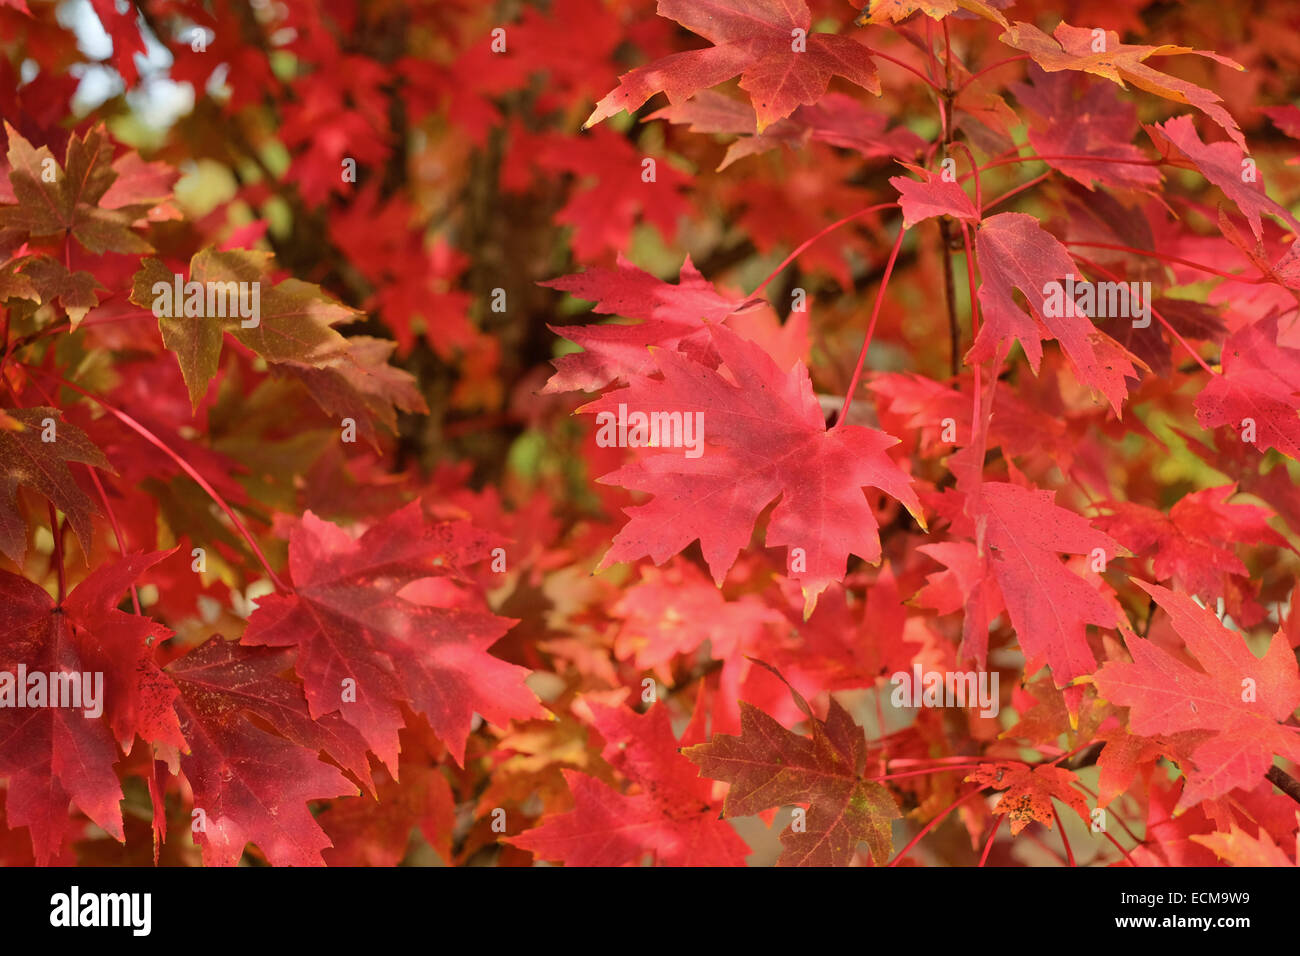 Ahorn October Glory Red October Glory Maple Leaves Stock Photos Red October